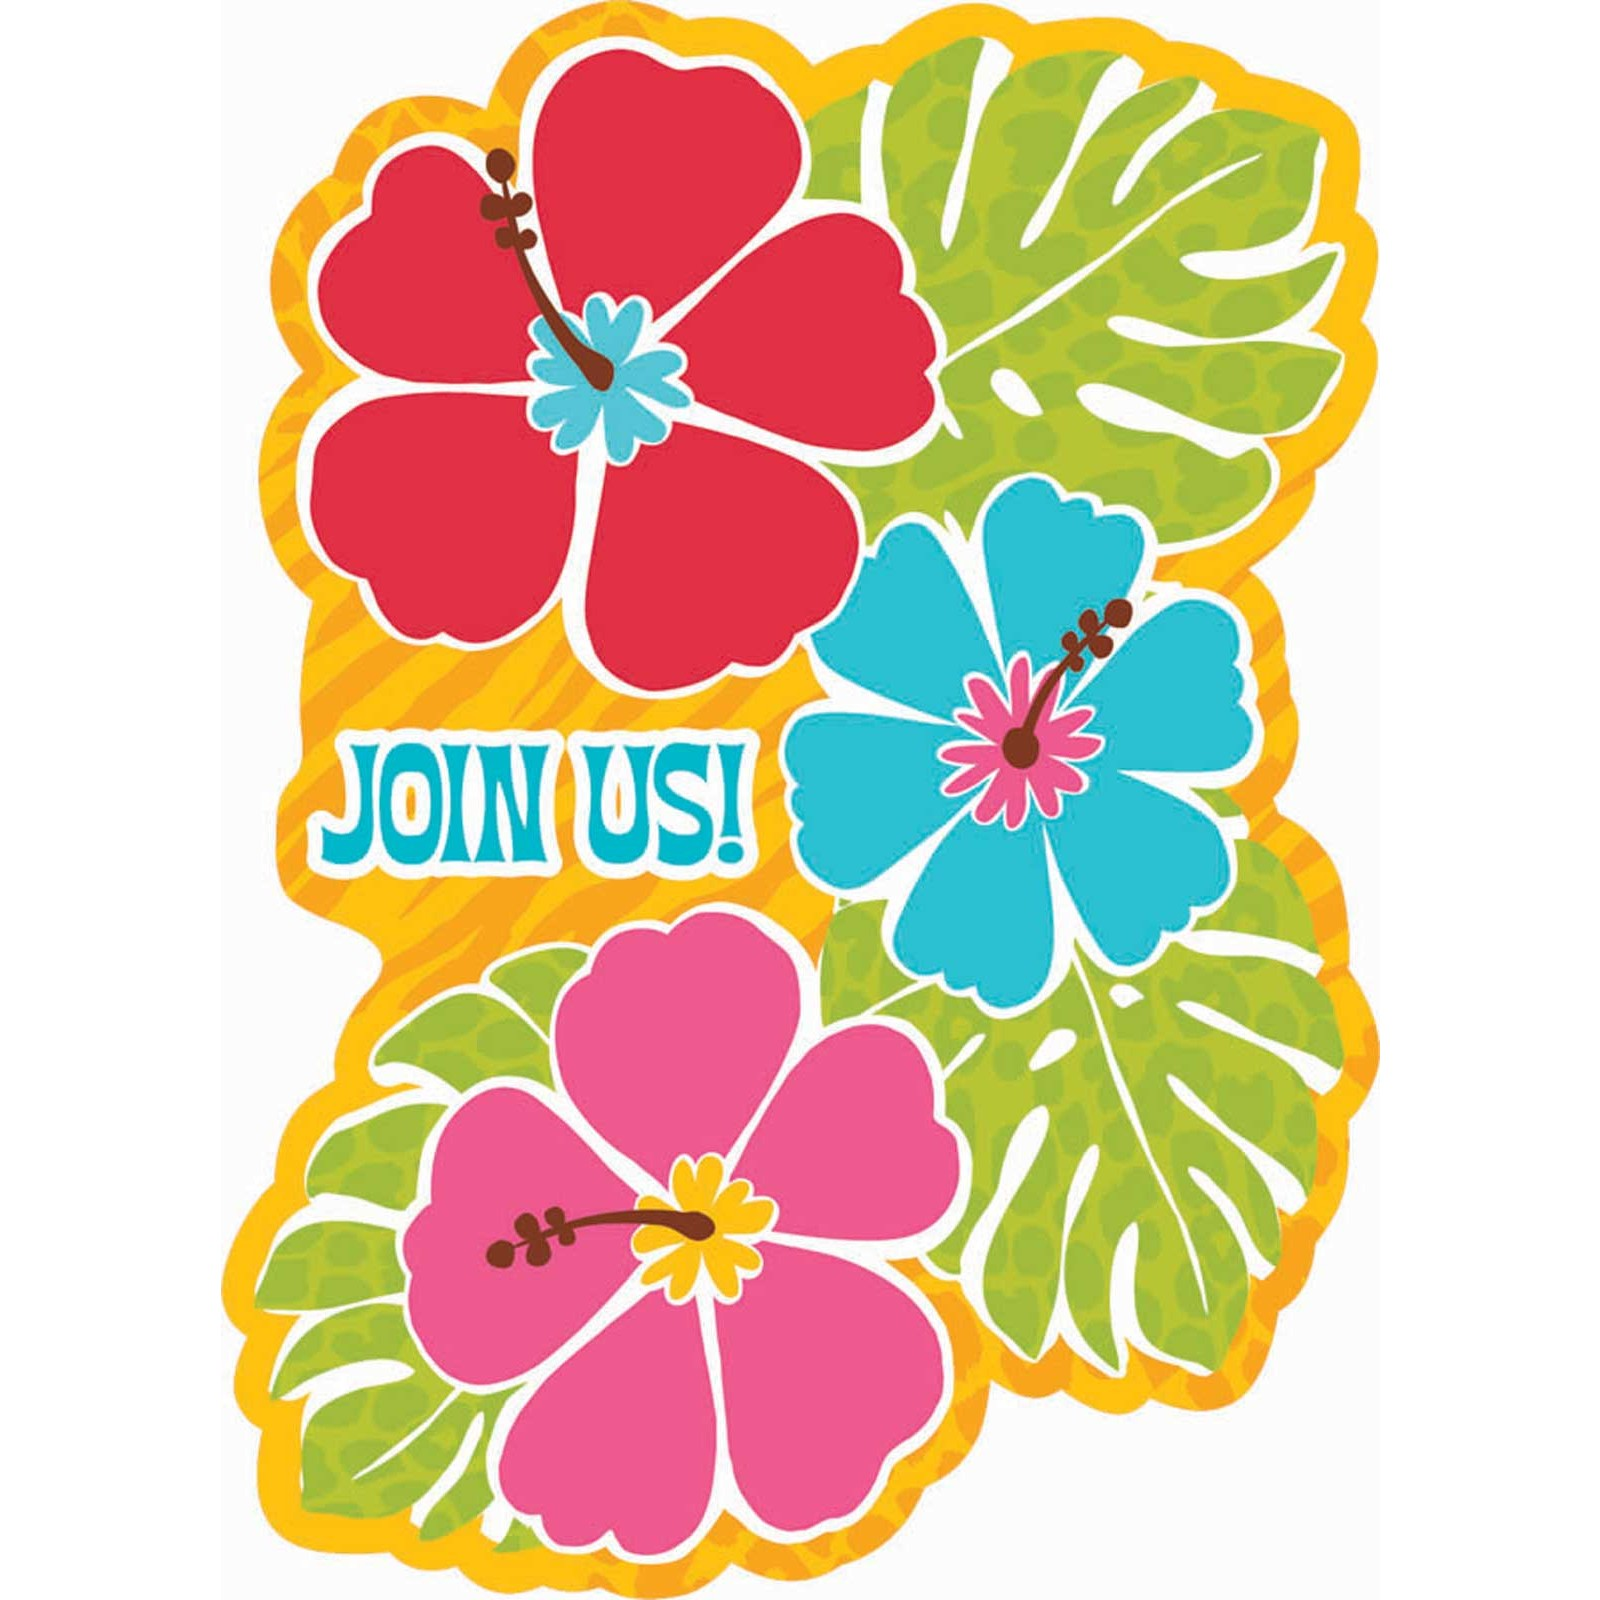 Hawaii luau clipart clipart kid 3-Hawaii luau clipart clipart kid 3-11